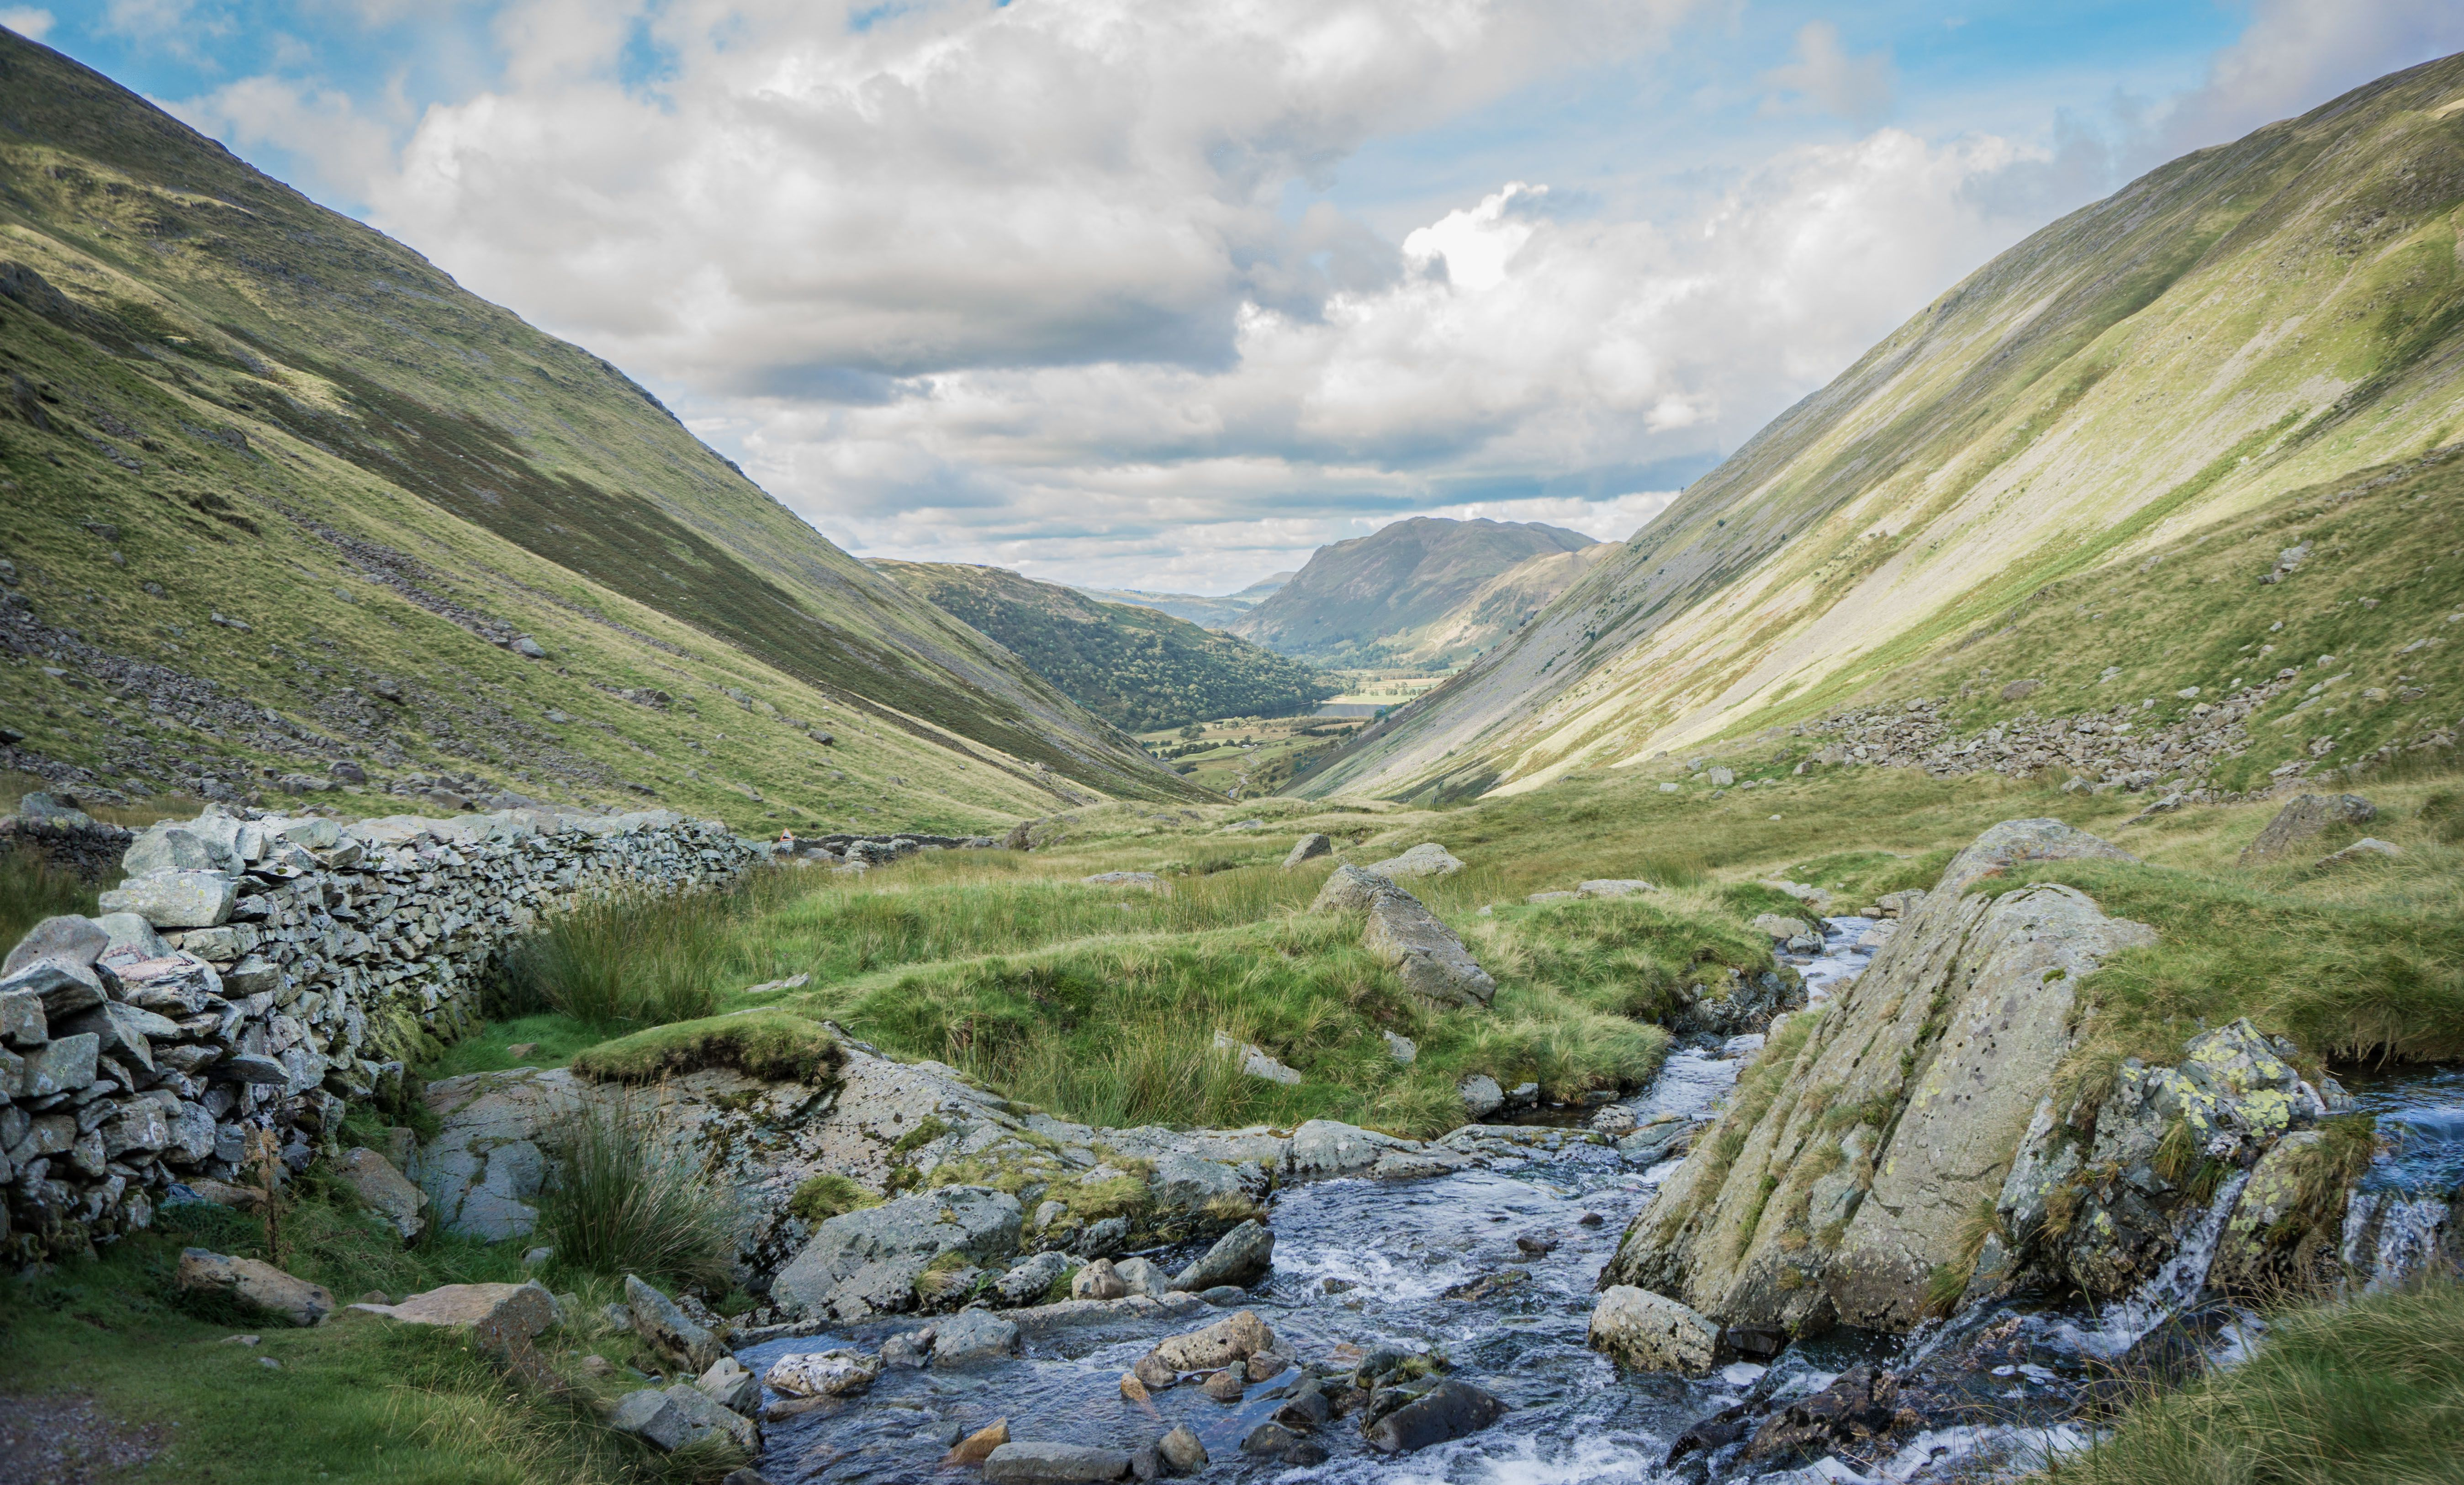 Scenic View Of Kirkstone Pass Against Cloudy Sky